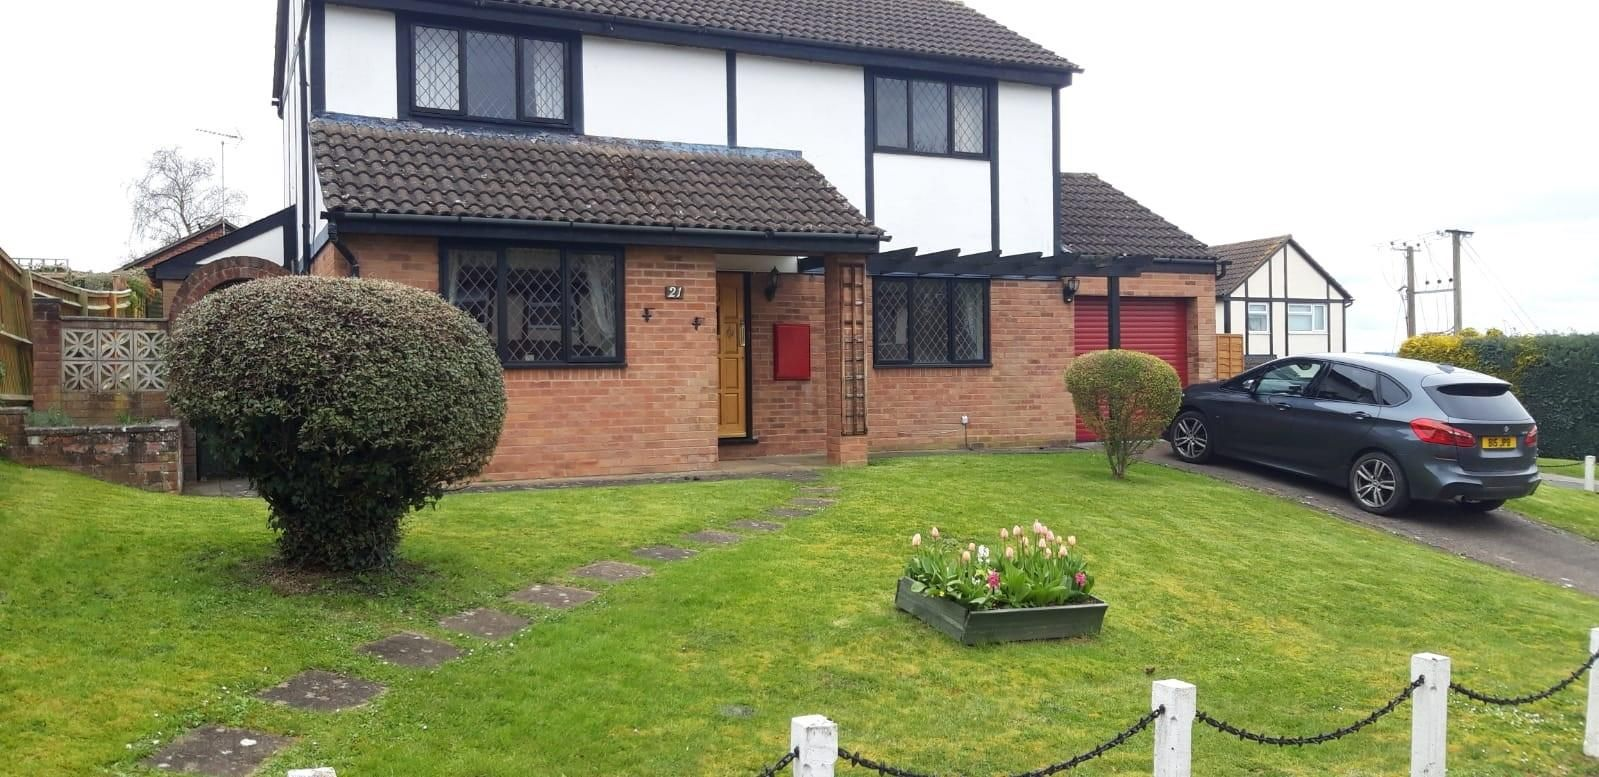 3 bed detached for sale in Leominster  - Property Image 14